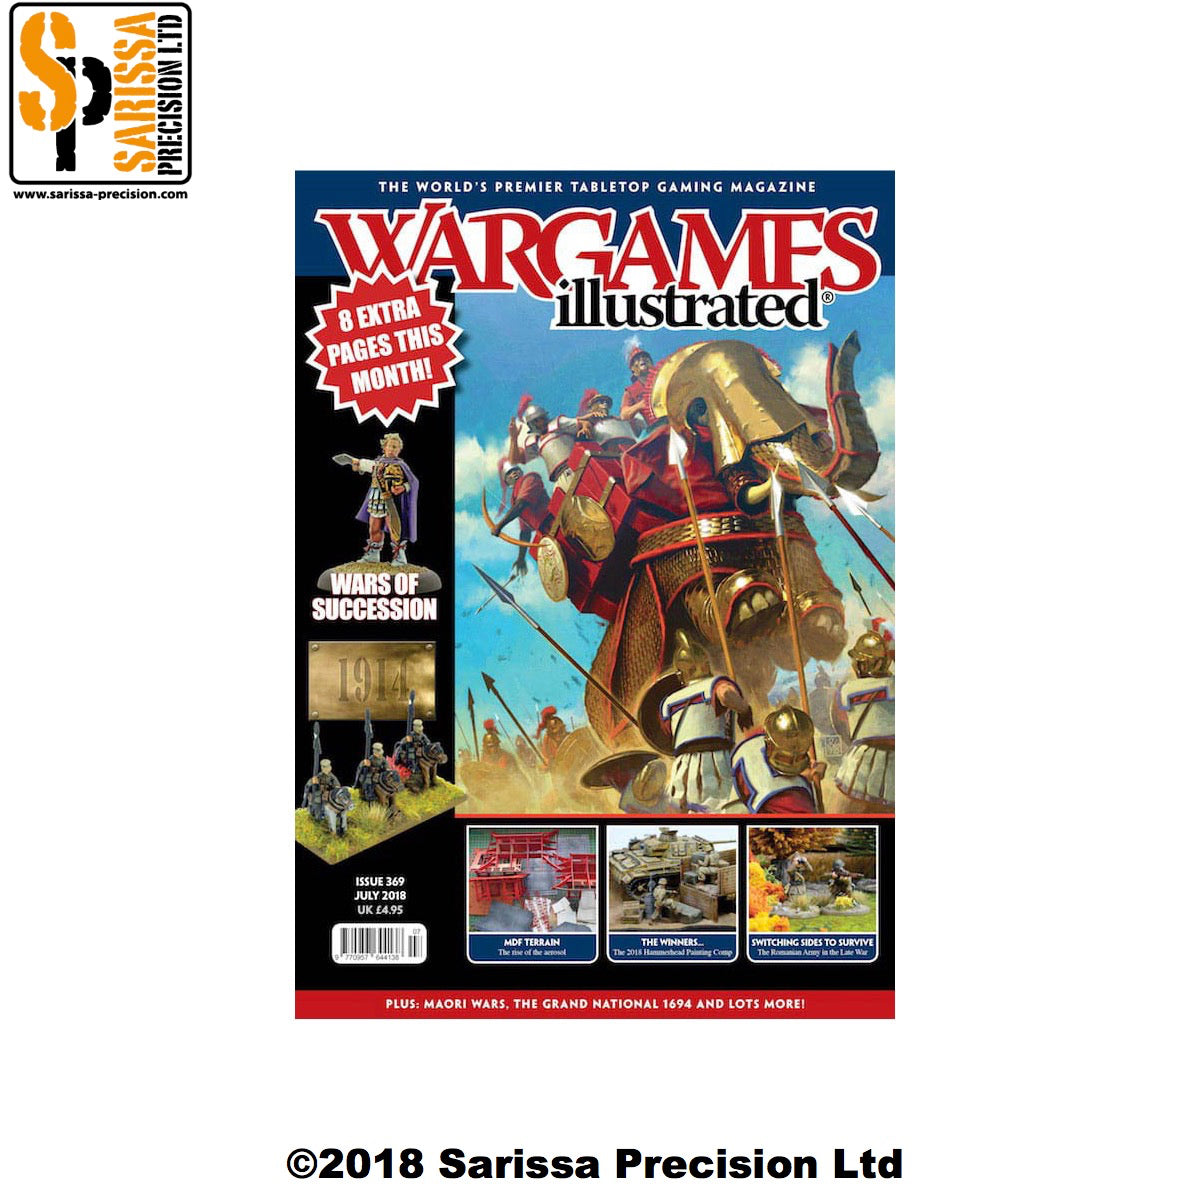 Wargames Illustrated 369 July 2018